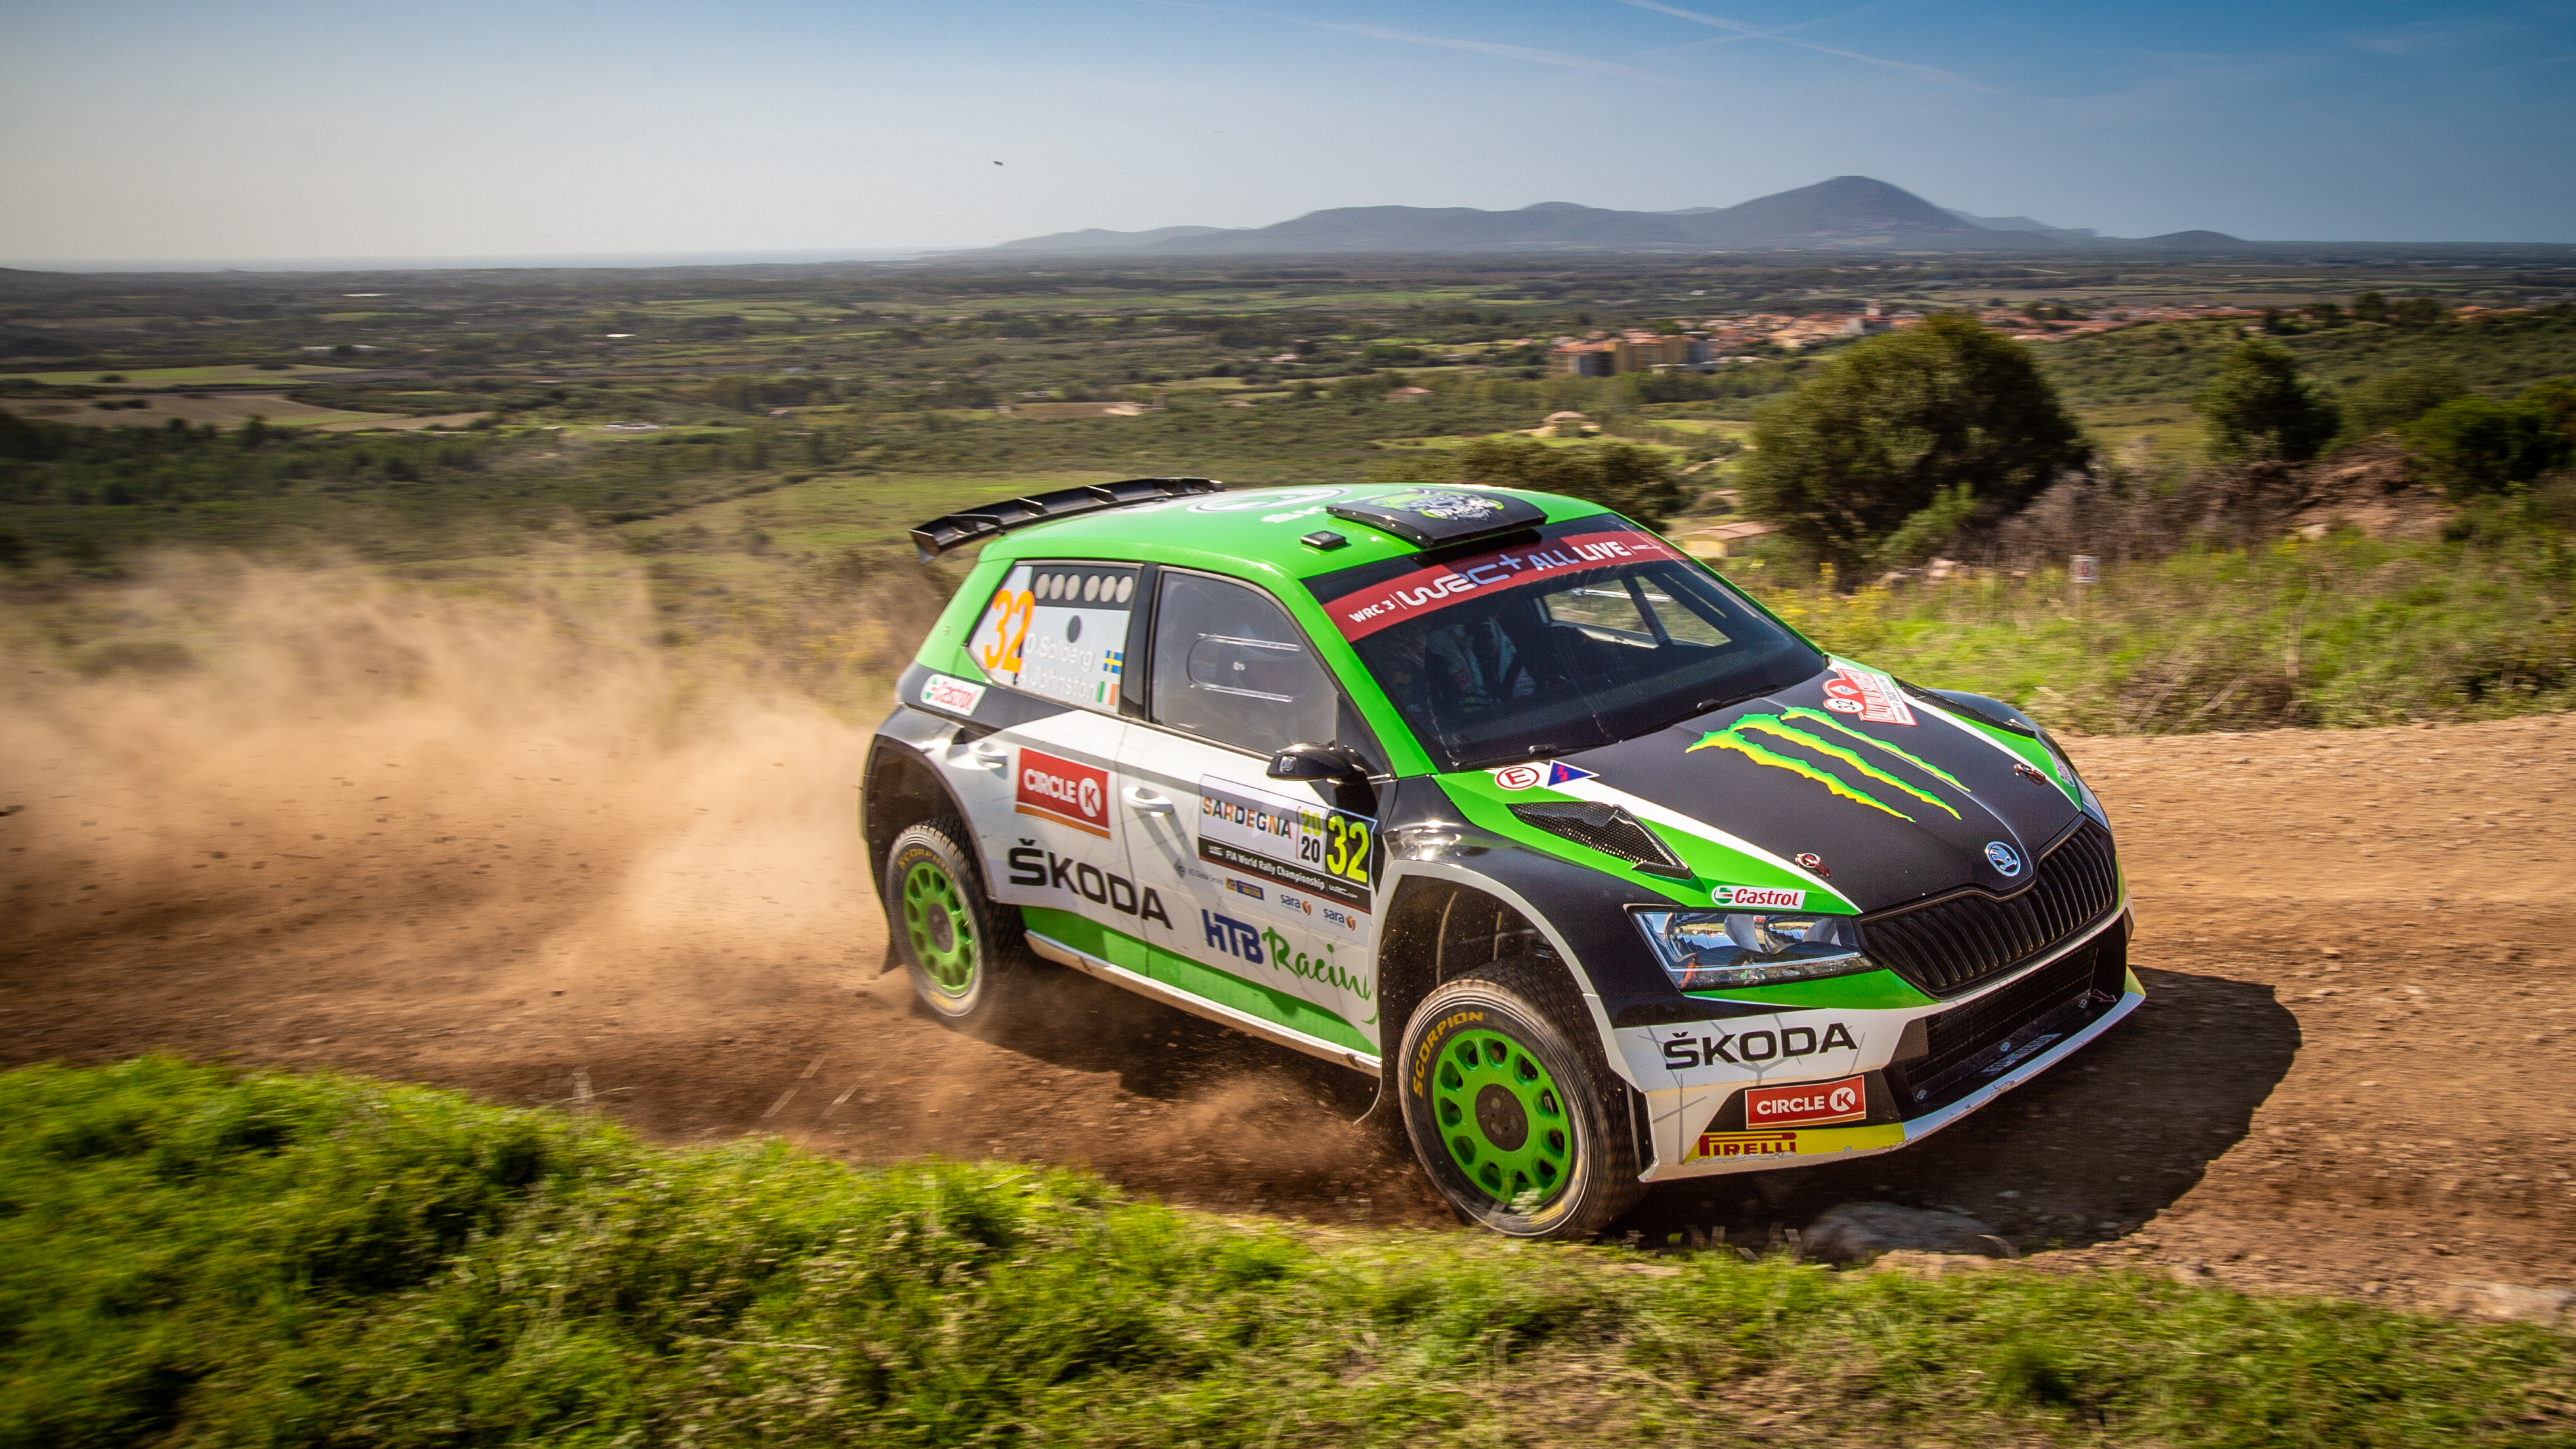 Rally Italia Sardegna: Two SKODA crews on top of WRC2 and WRC3 after tough first leg - Image 5